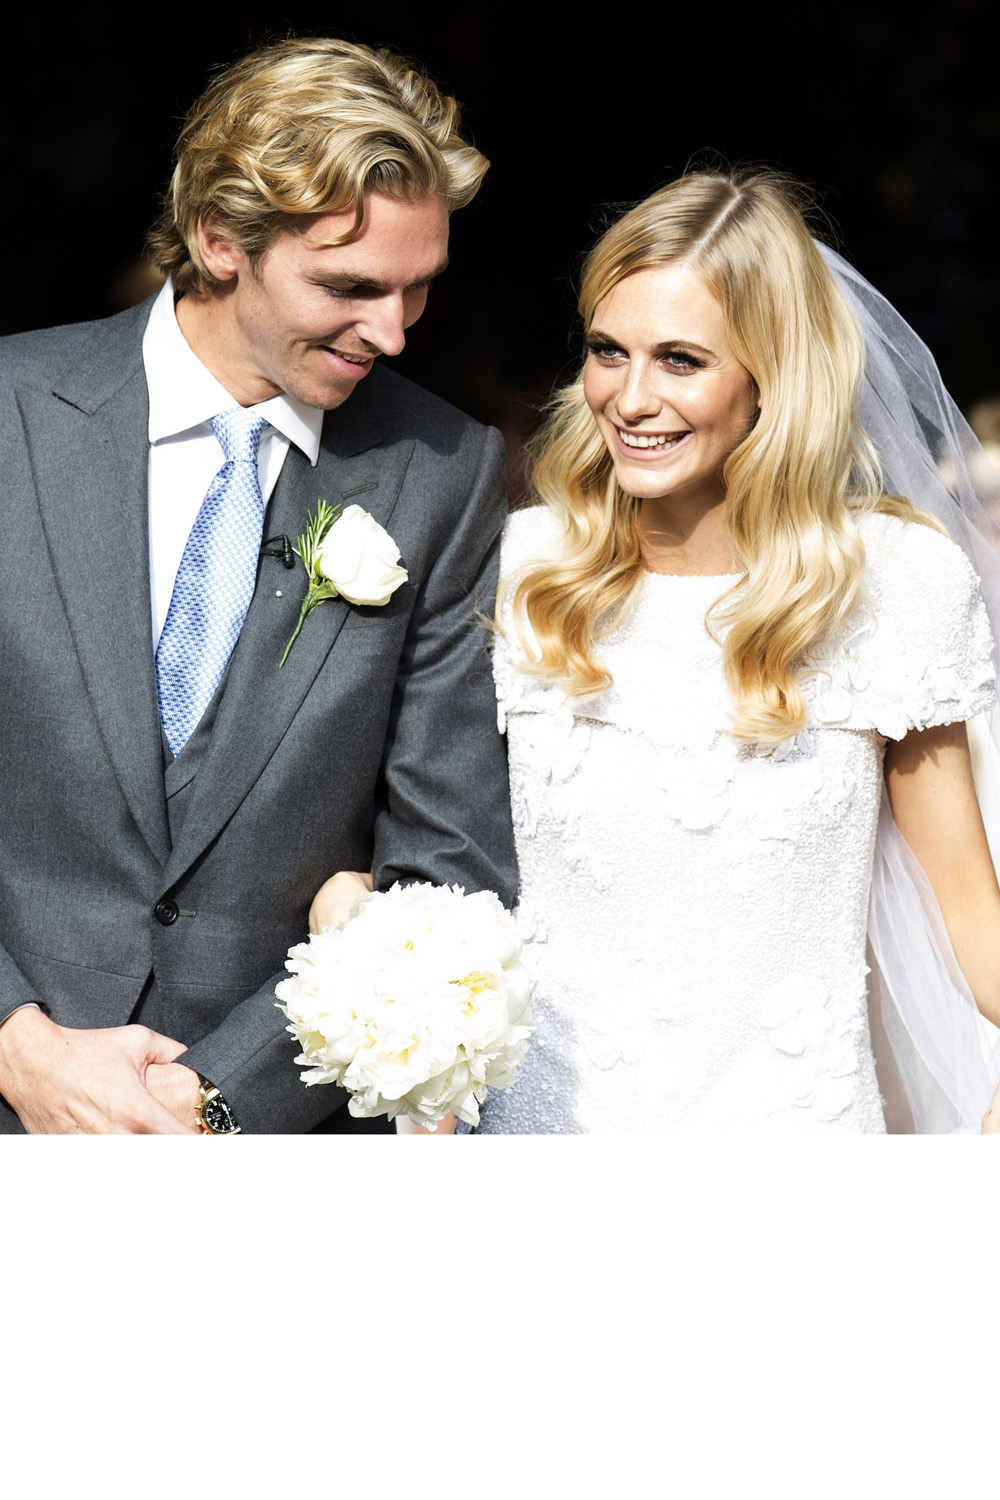 Supermodel Wedding Dresses: See The Best Model Brides From Kate Moss ...